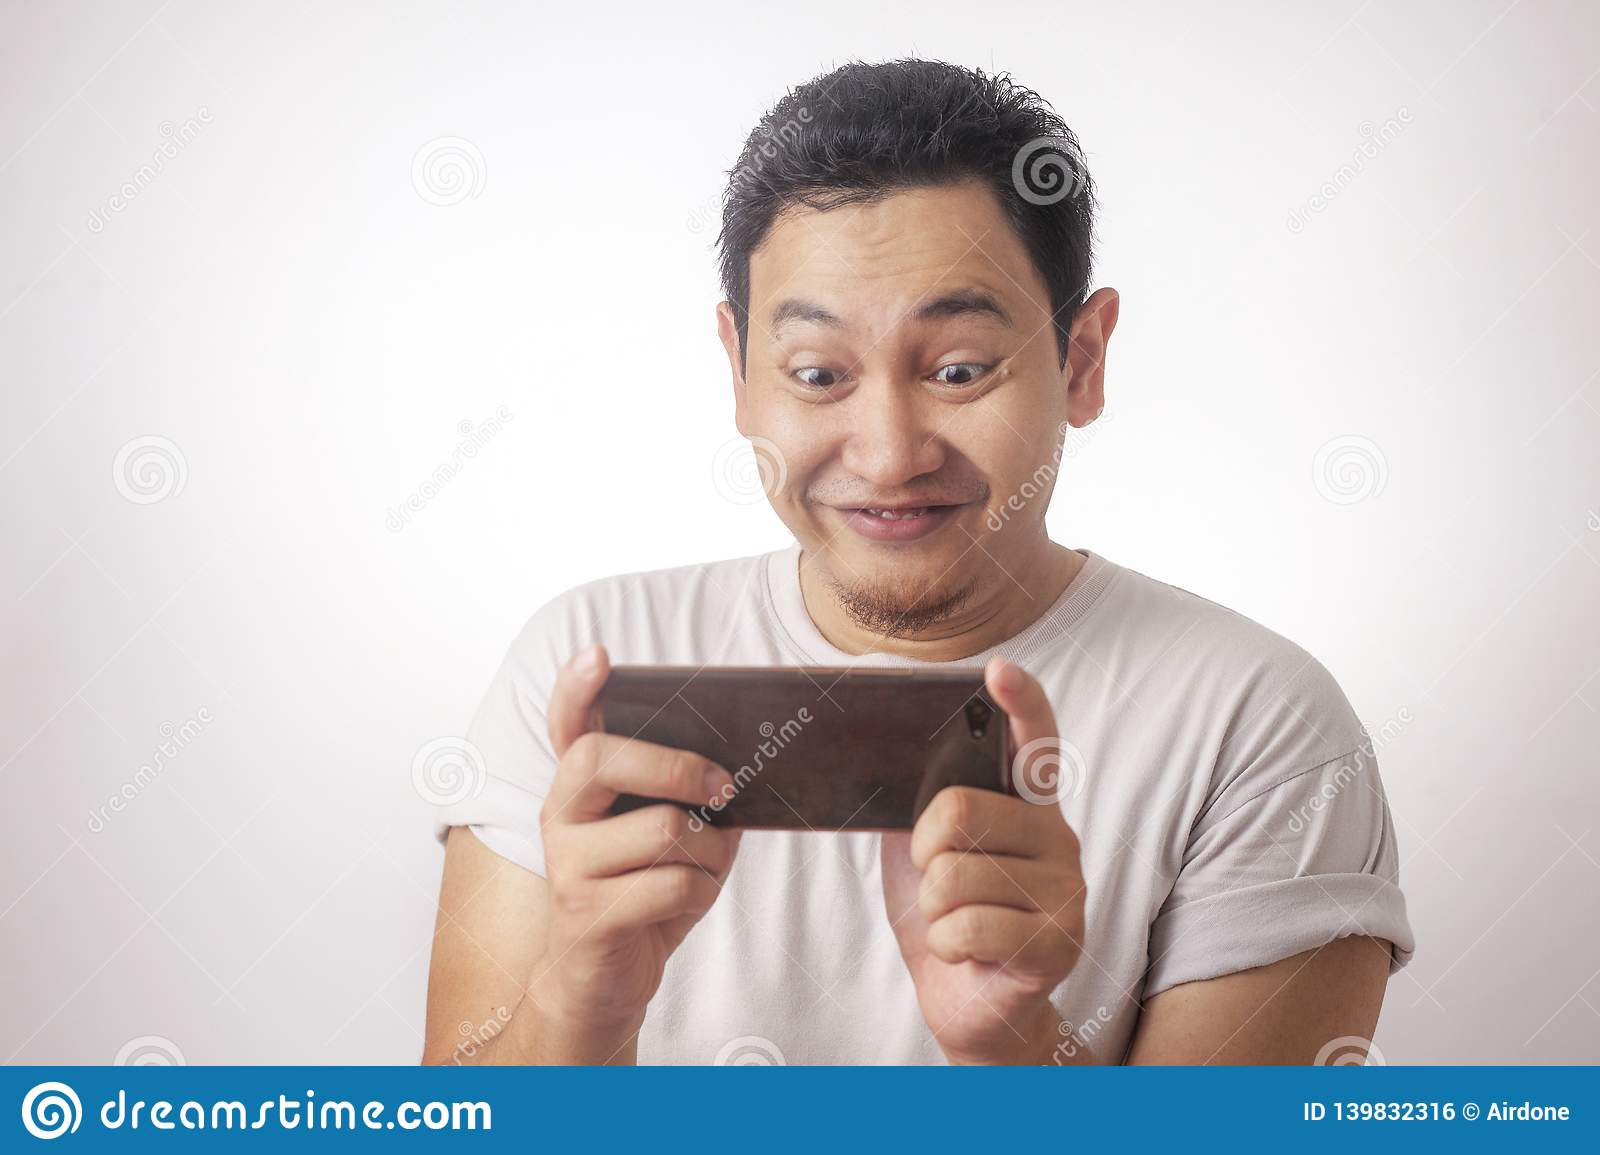 Funny Young Asian Guy Playing Games on Tablet Smart Phone